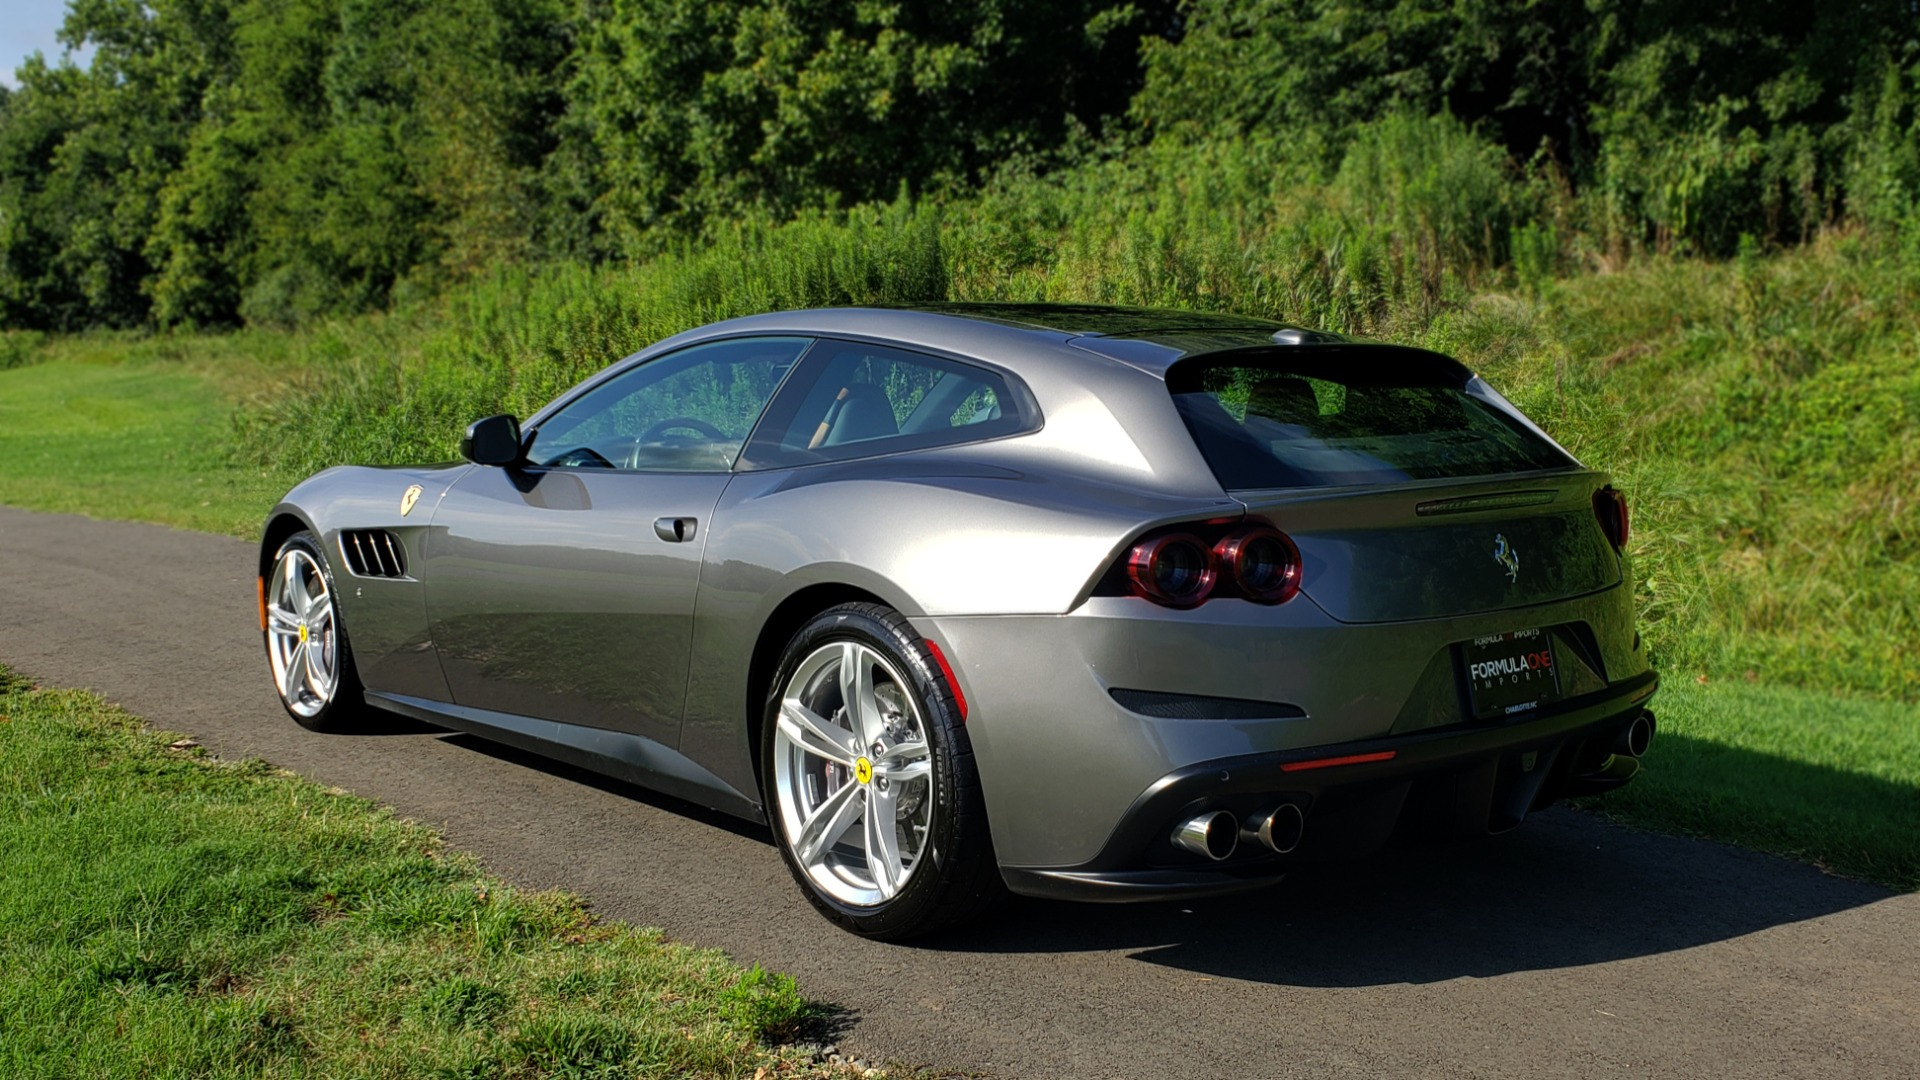 Used 2017 Ferrari GTC4 LUSSO AWD / PANO-ROOF / APPLE CAR PLAY / SUSP LIFT / JBL SOUND for sale $188,999 at Formula Imports in Charlotte NC 28227 6